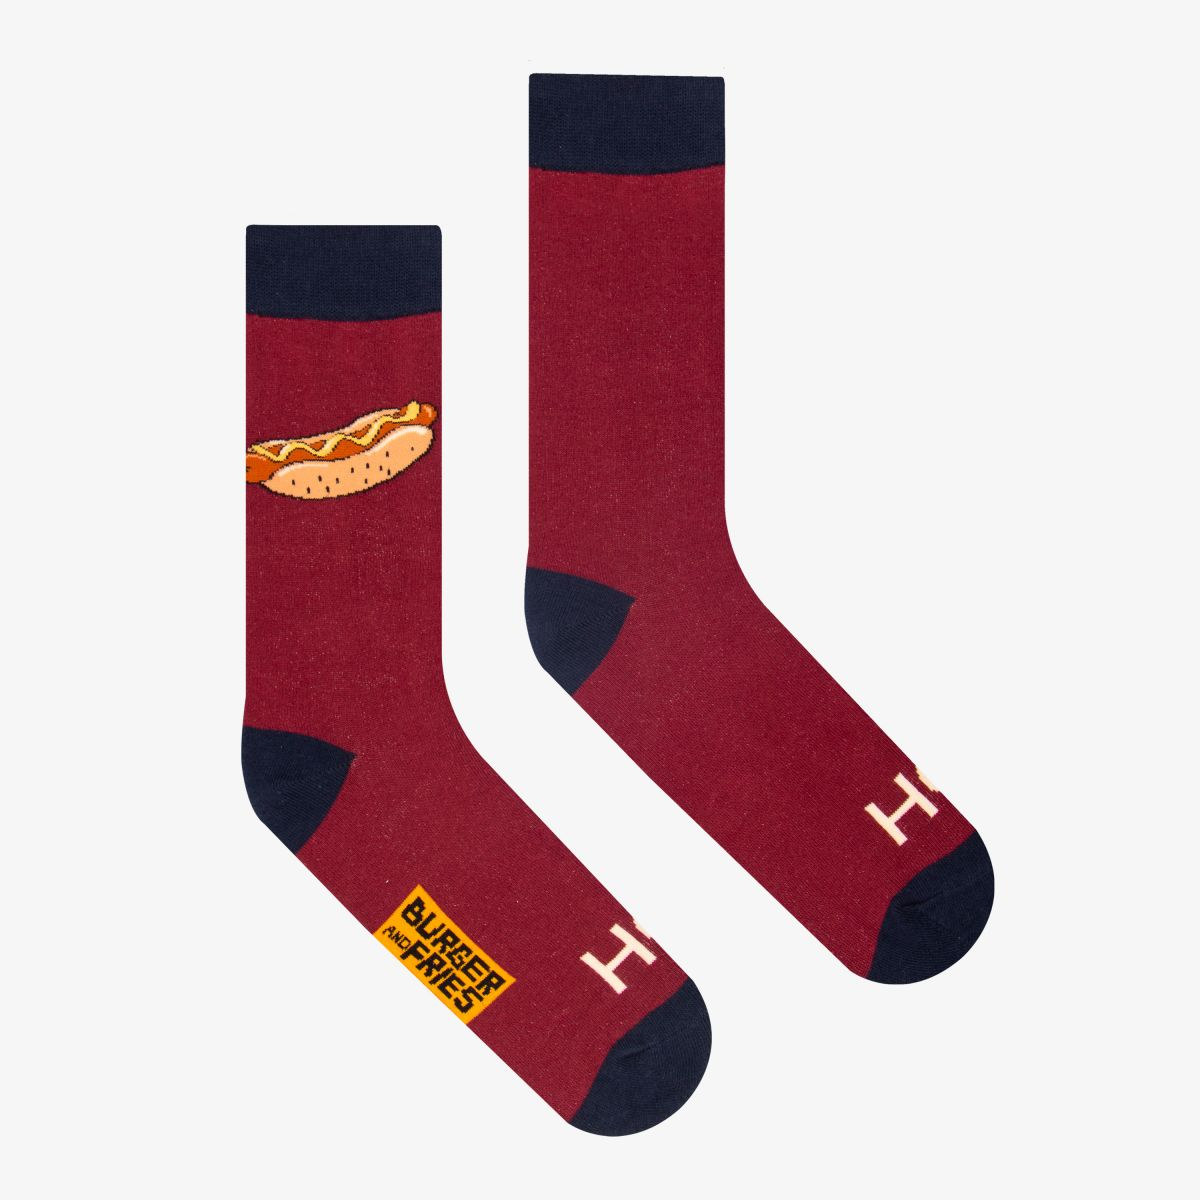 FOOD SOCKS I'M HOT